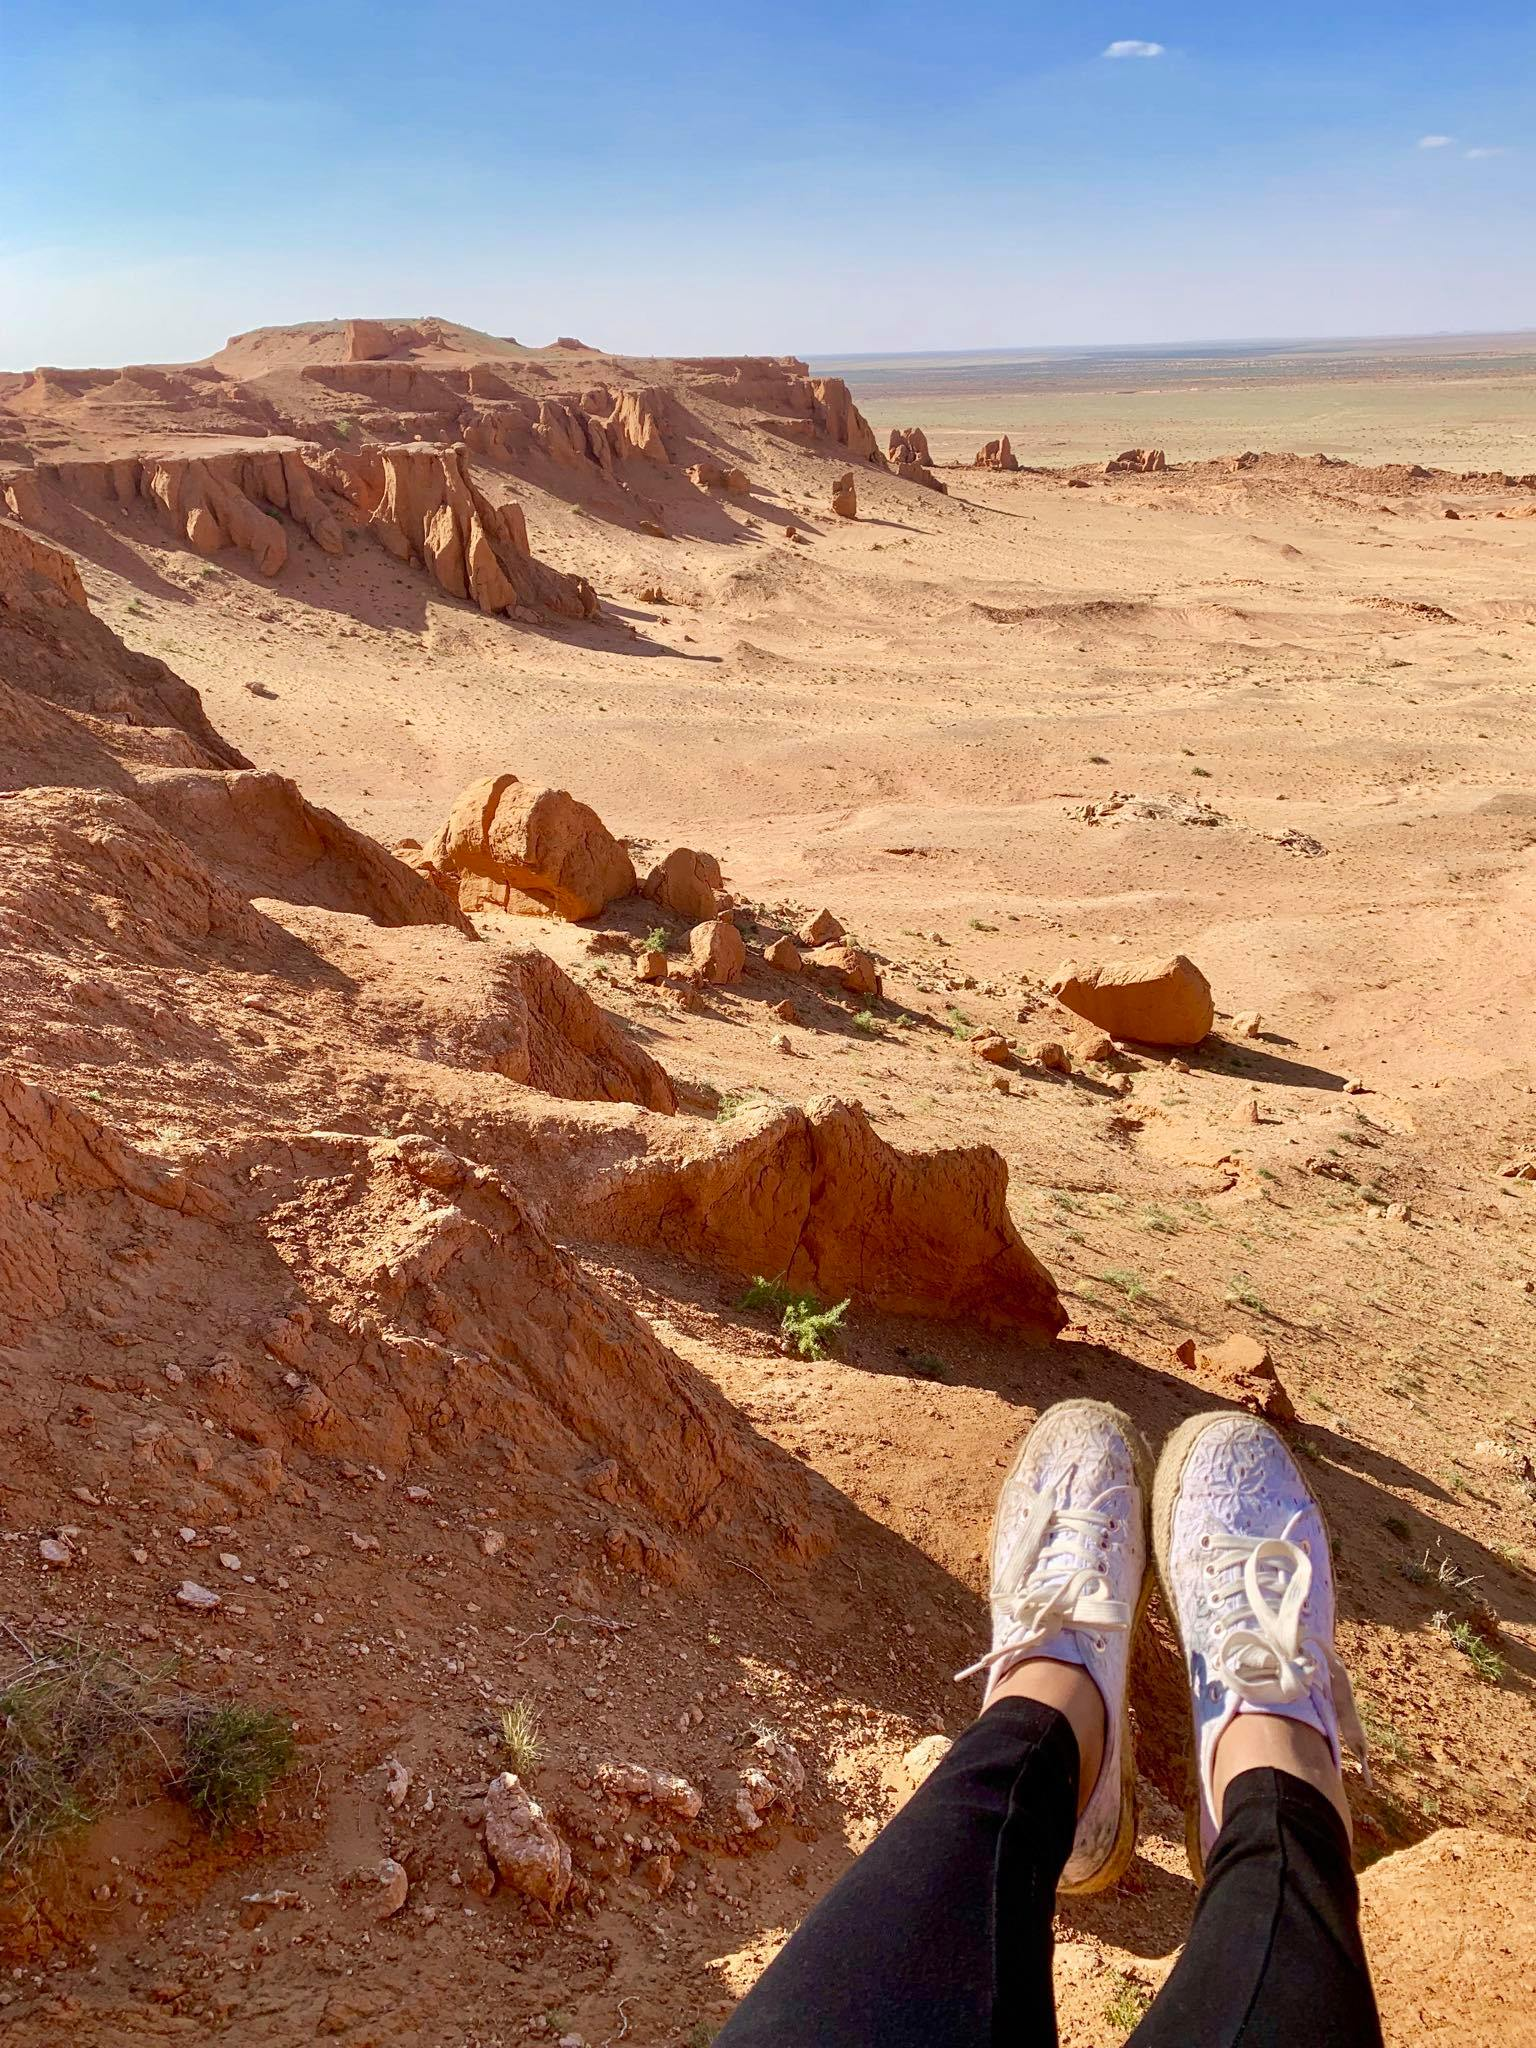 Kach Solo Travels in 2019 Gobi desert with Vast Steppe Mongolia!15.jpg